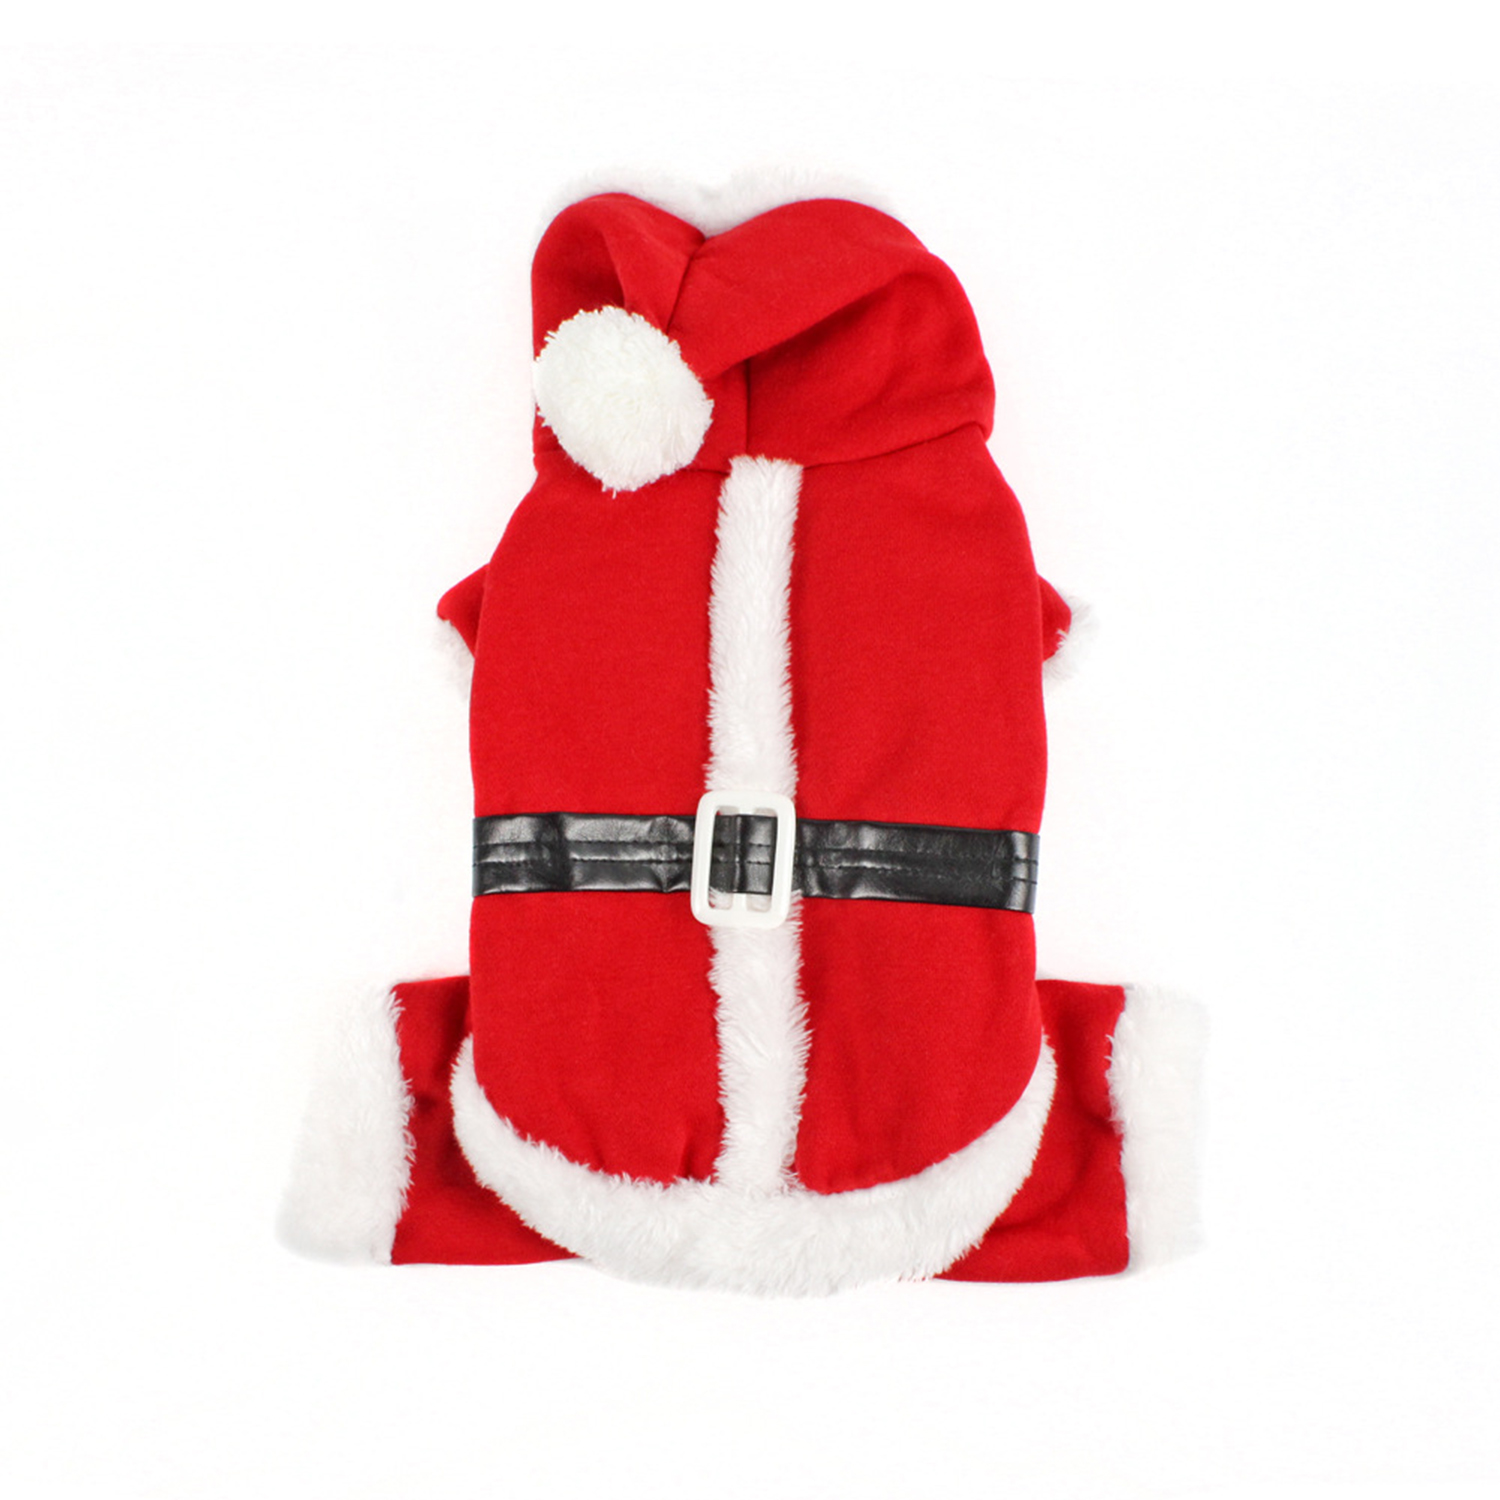 S/M/L/XL Pet Clothes Dog Christmas Costume Cute Cartoon Santa Clothes for Small Dog Cloth Costume Dress Xmas apparel for Kitten Dogs